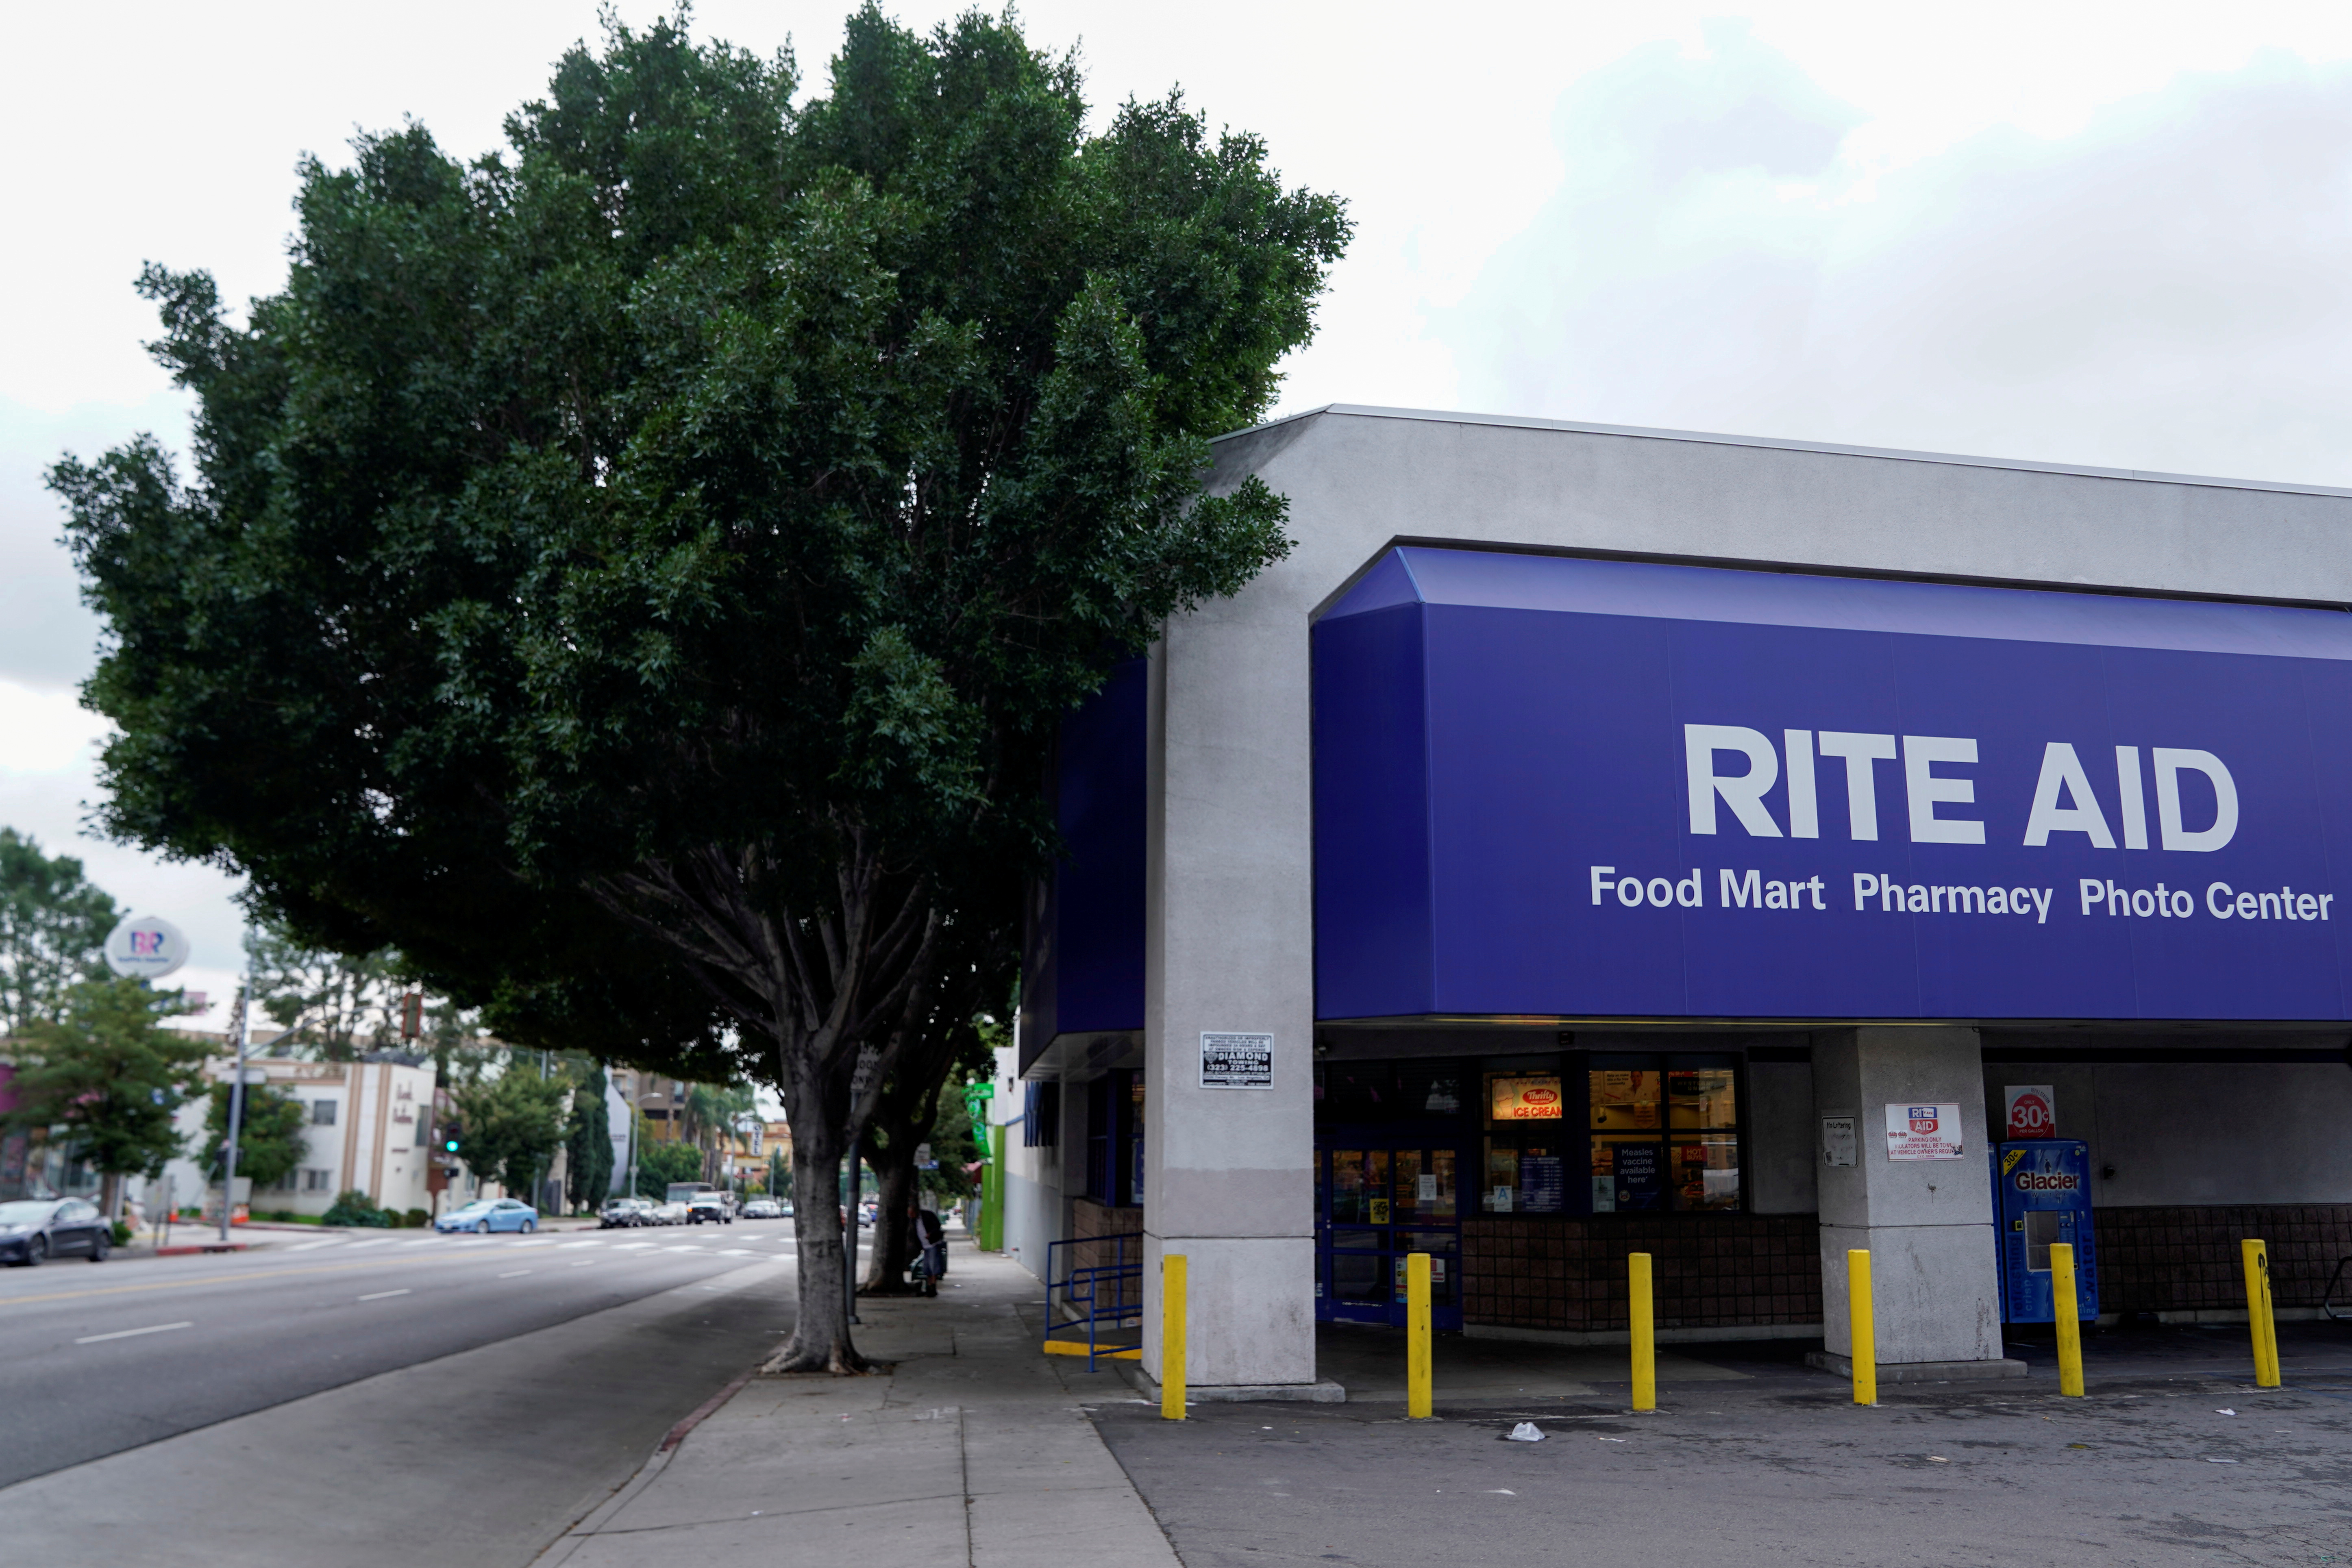 A Rite Aid store at 1841 North Western Avenue is shown at in Los Angeles, California.   REUTERS/Mike Blake